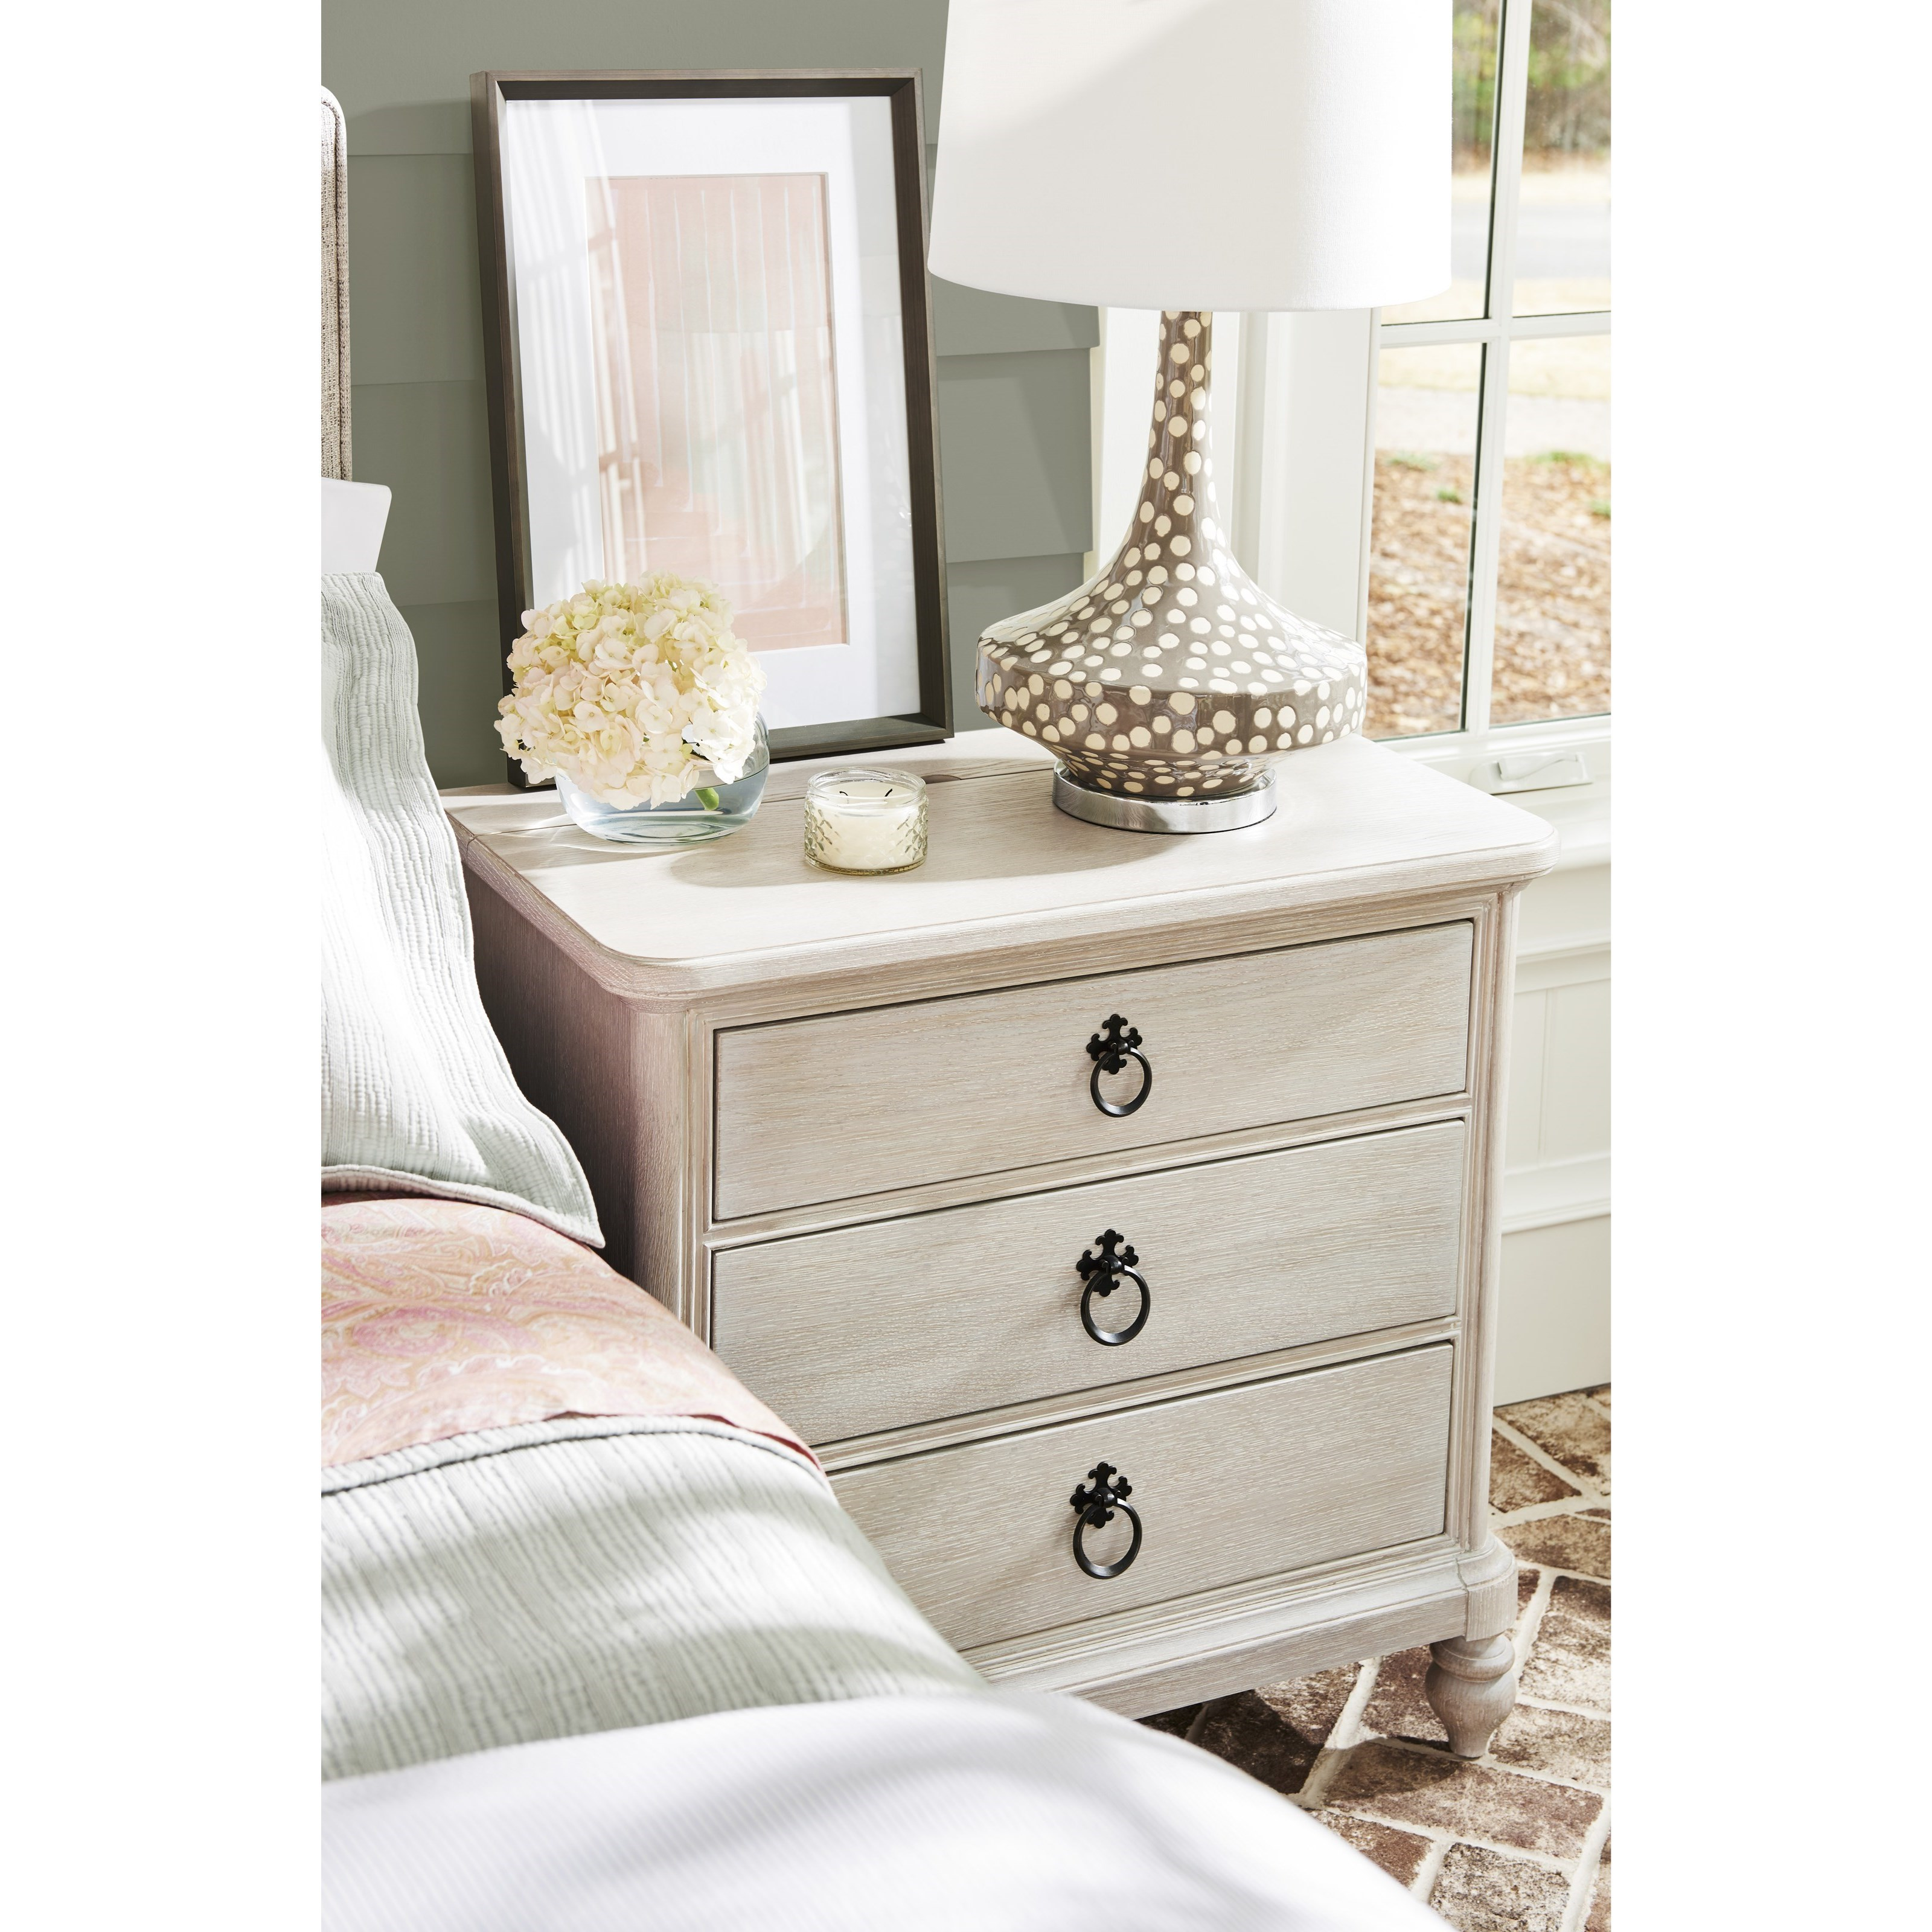 Paula Deen By Universal Bungalow 795350 Cottage Nightstand